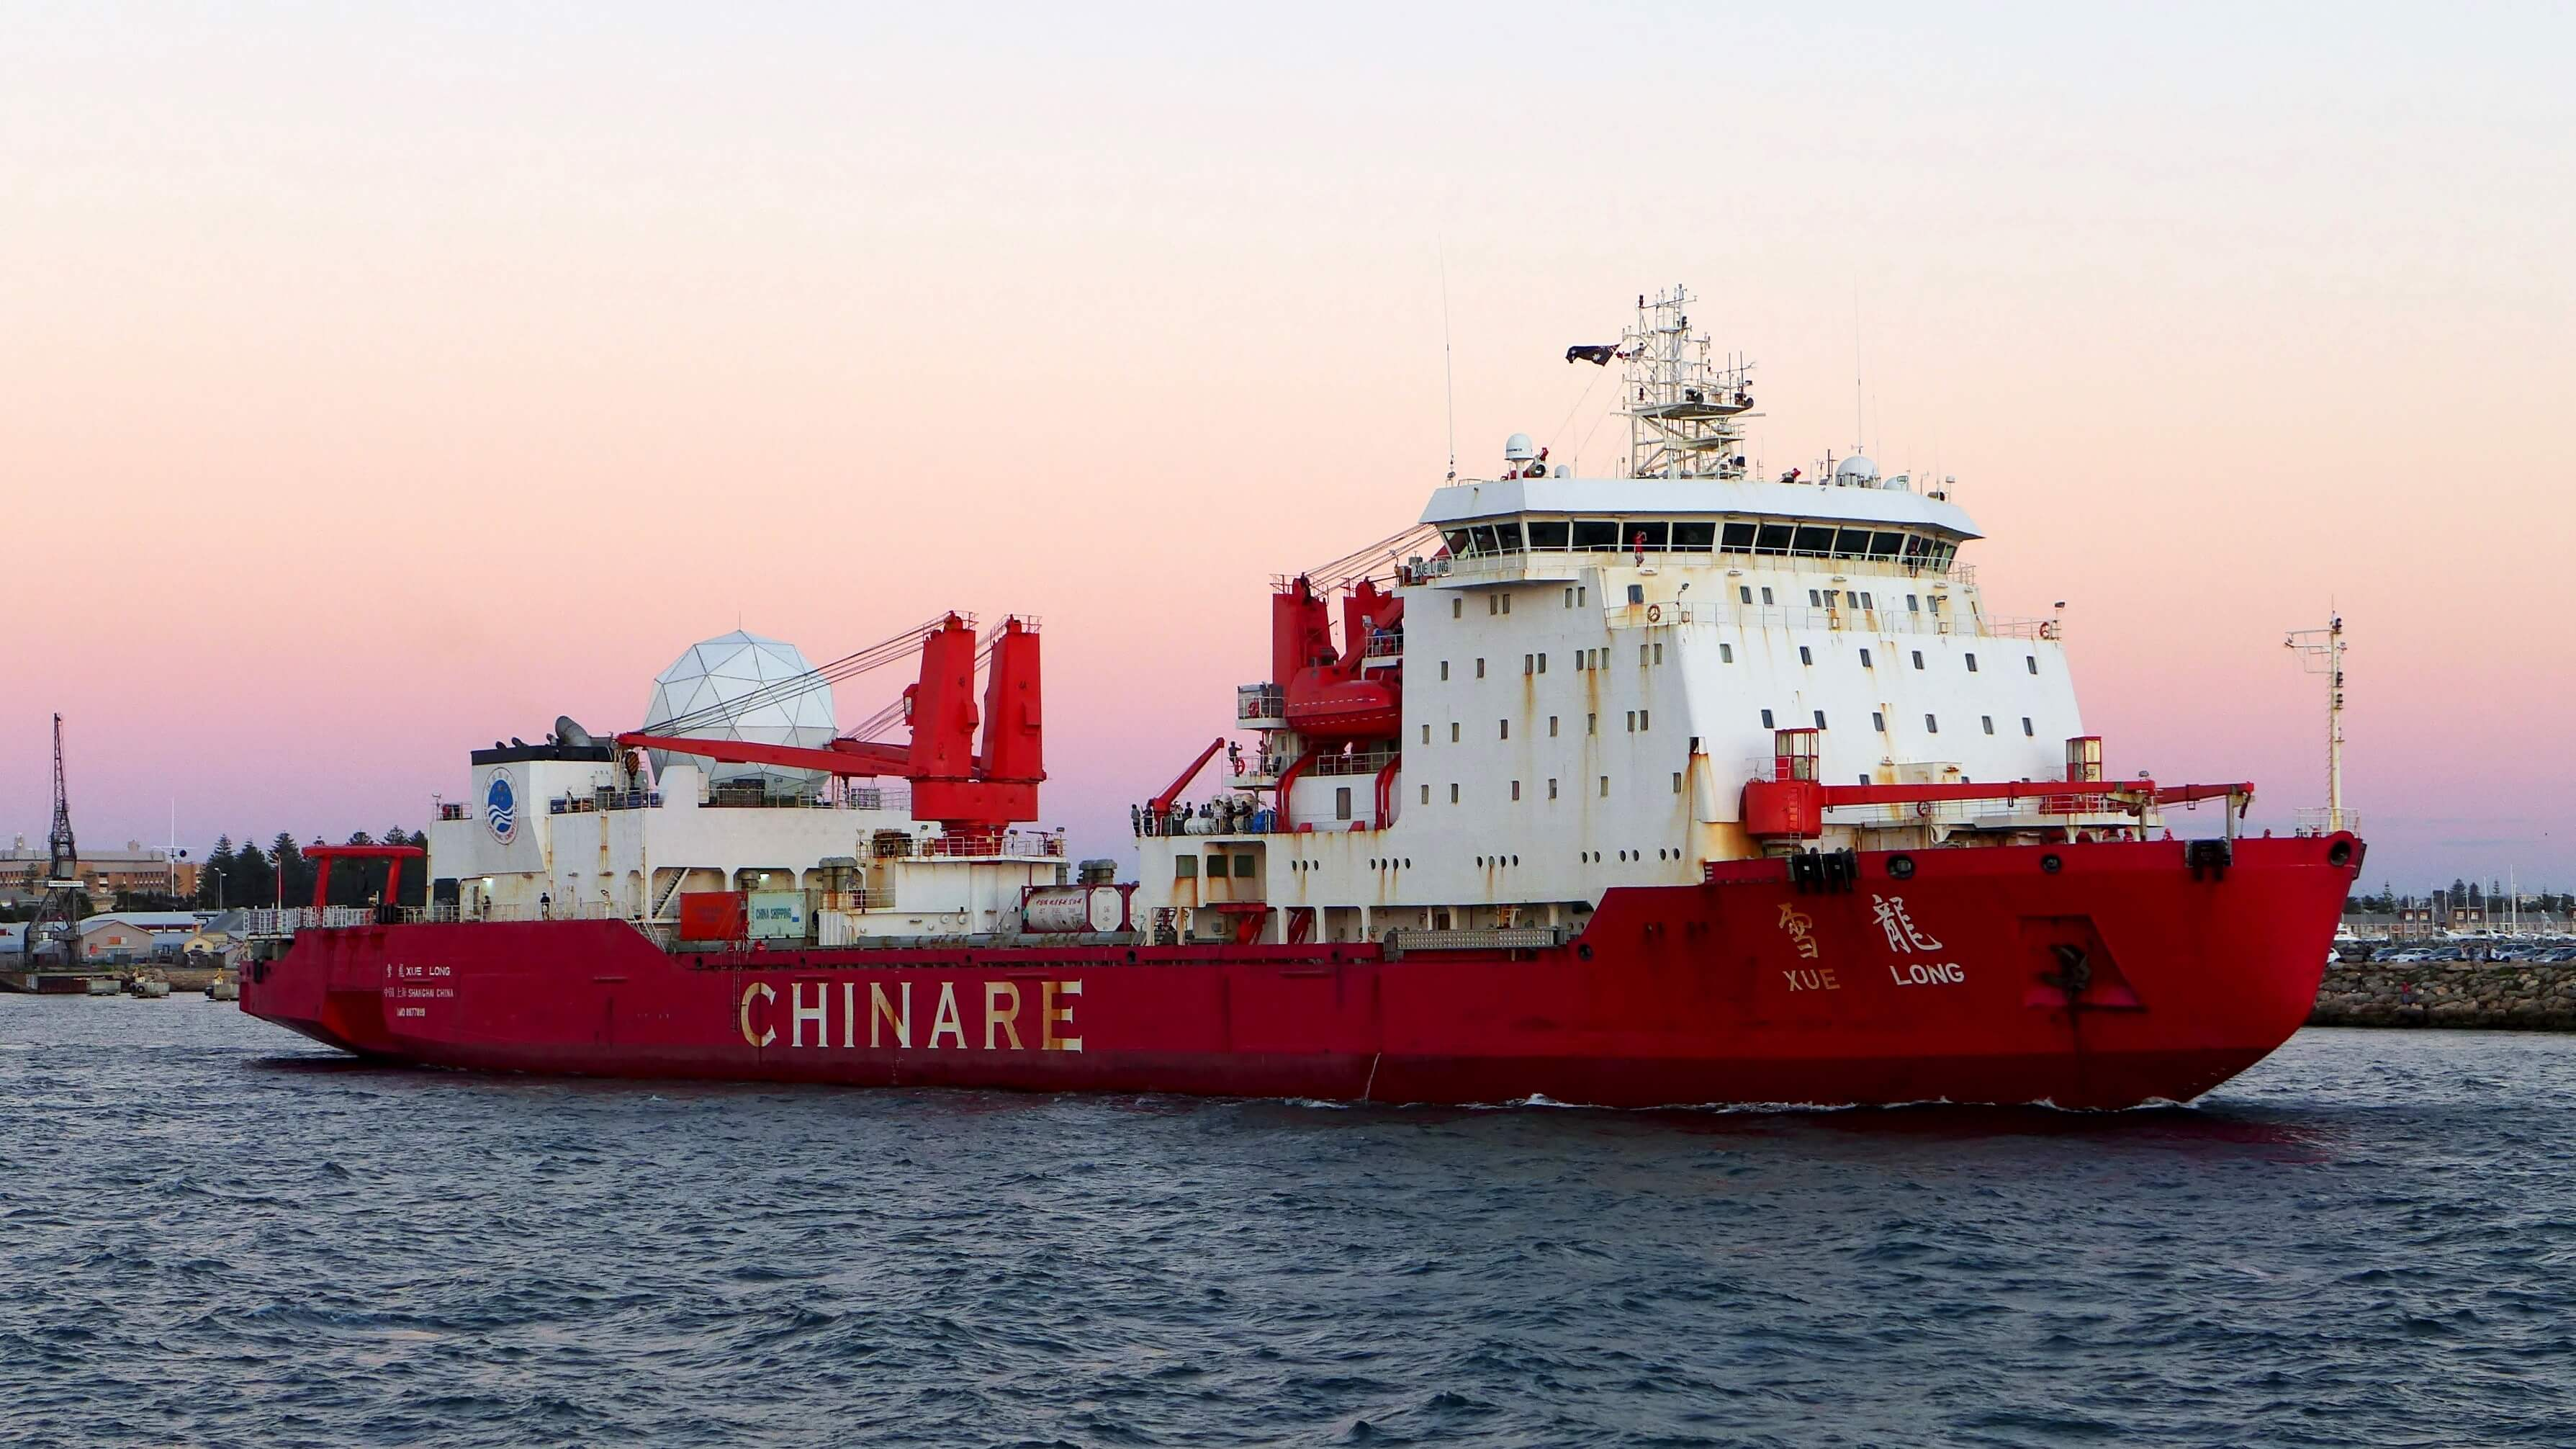 Xue Long, a Chinese icebreaker, departing from the inner harbour of the Port of Fremantle, Western Australia, on her way back to her port of registry, Shanghai, China, after a visit to Antarctica, 28 March 2016 © Bahnfrend, Wikimedia